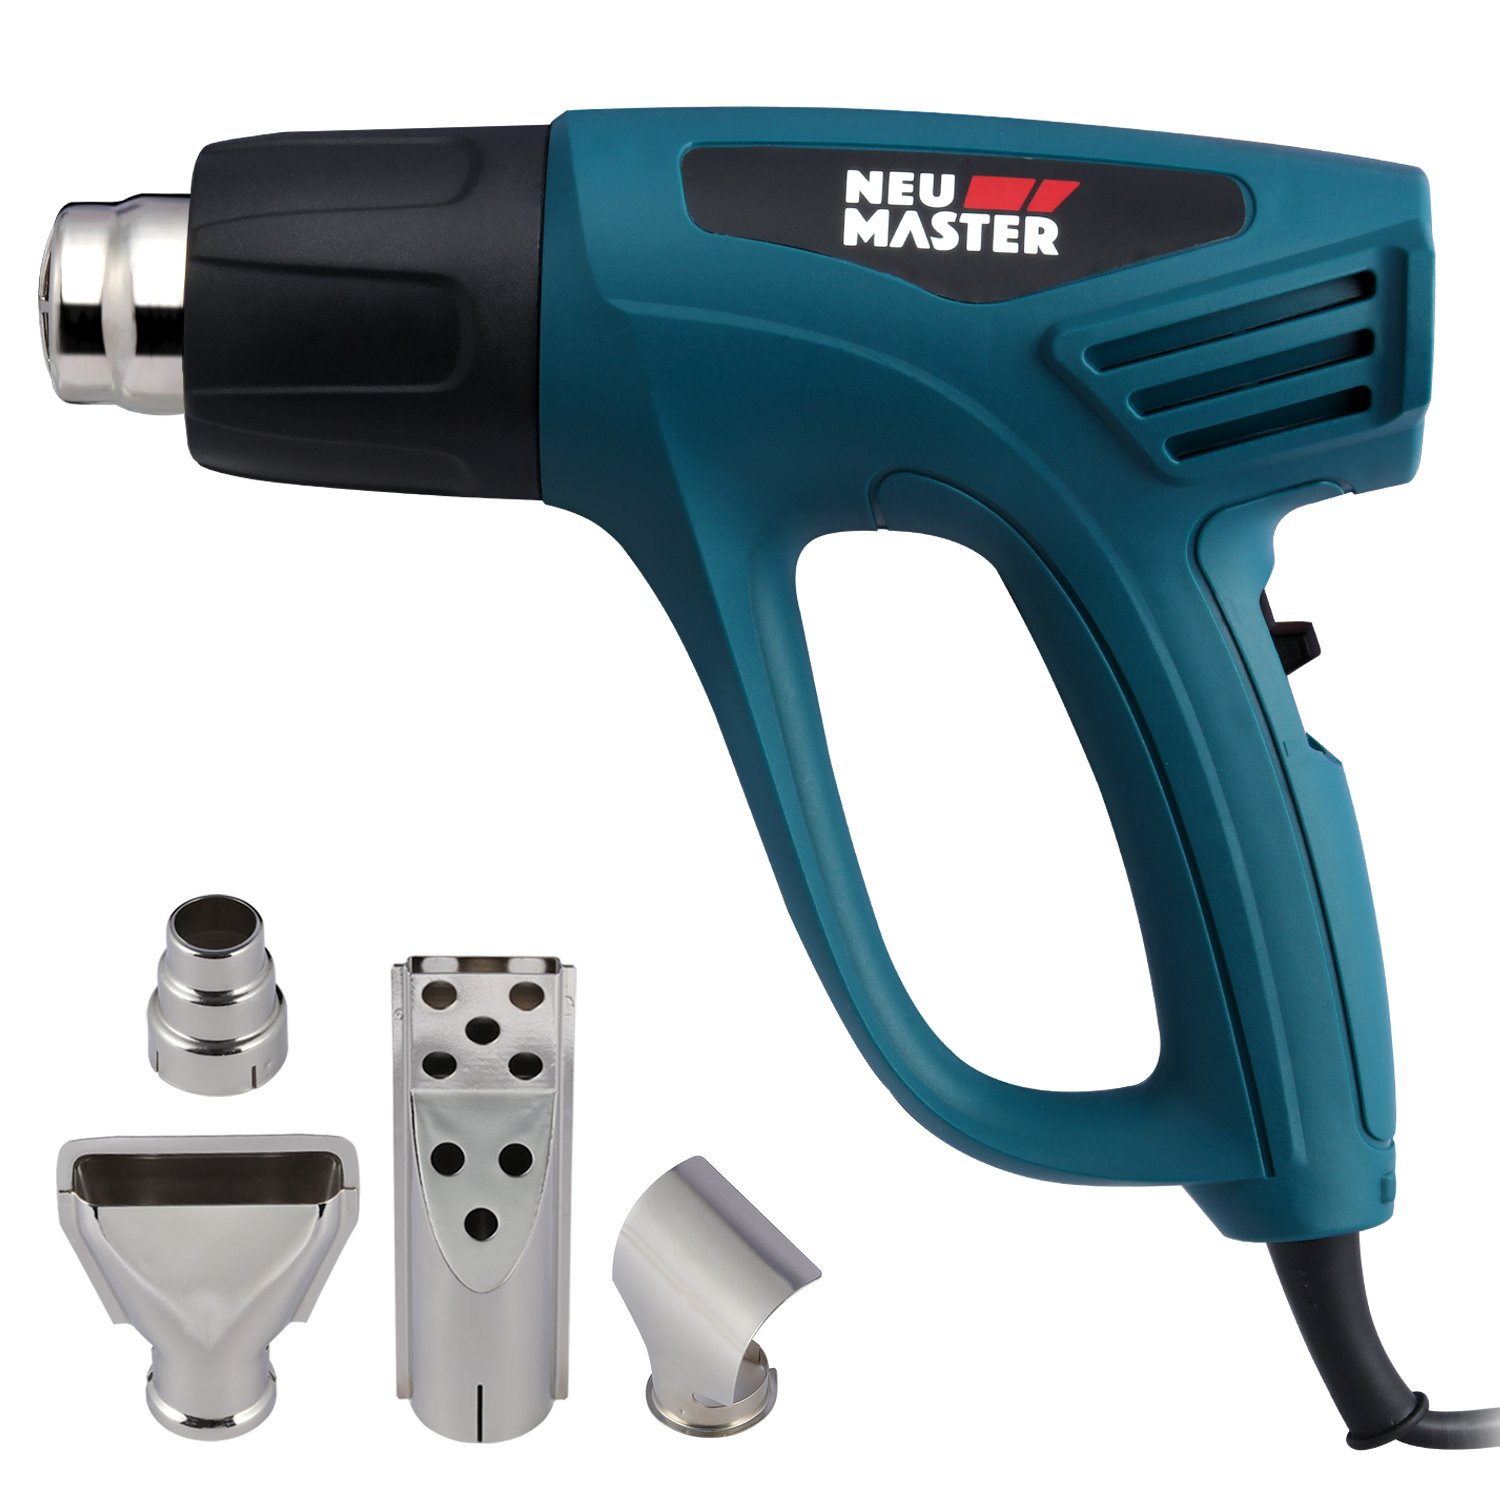 NEU MASTER N2190 1500W Heat Gun Kit with Variable Temperature Control with Overload Protection Four Nozzle Attachments for Stripping Paint, Bending Pipes, Lighting BBQ